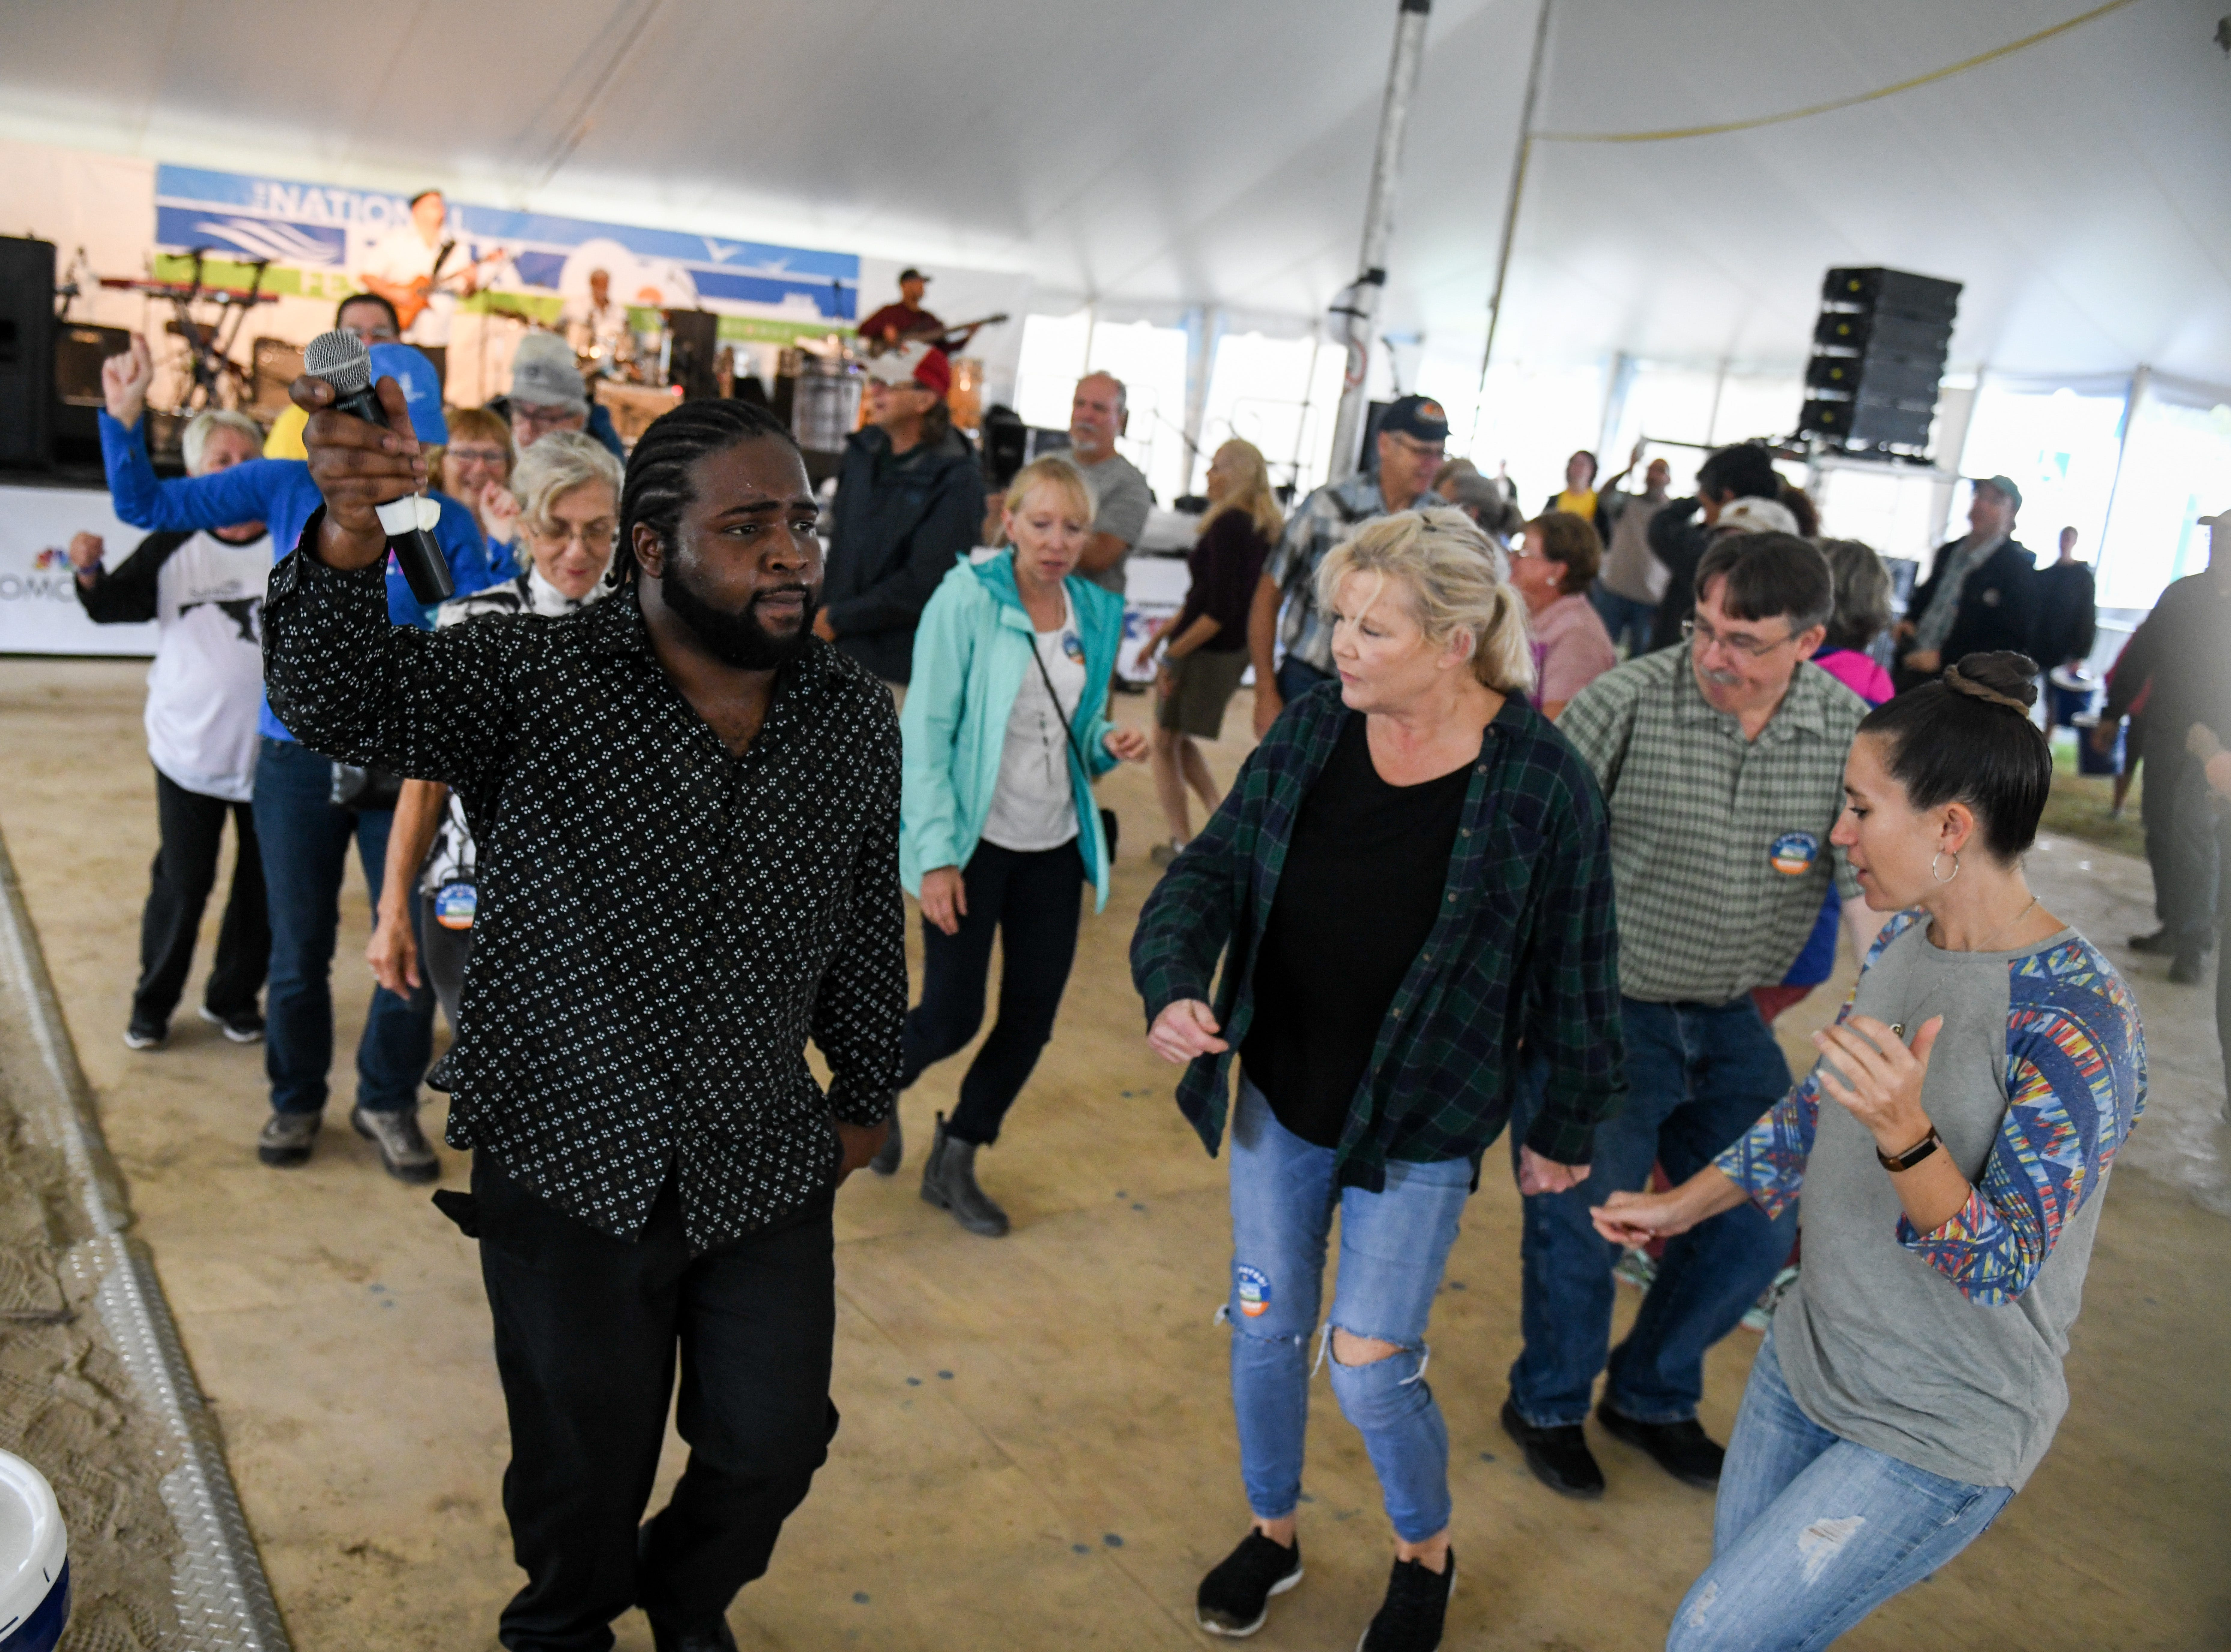 Festival attendees dance and cheer at the Marquise Knox performance at the National Folk Fest in Salisbury on Sunday, Sept. 9.